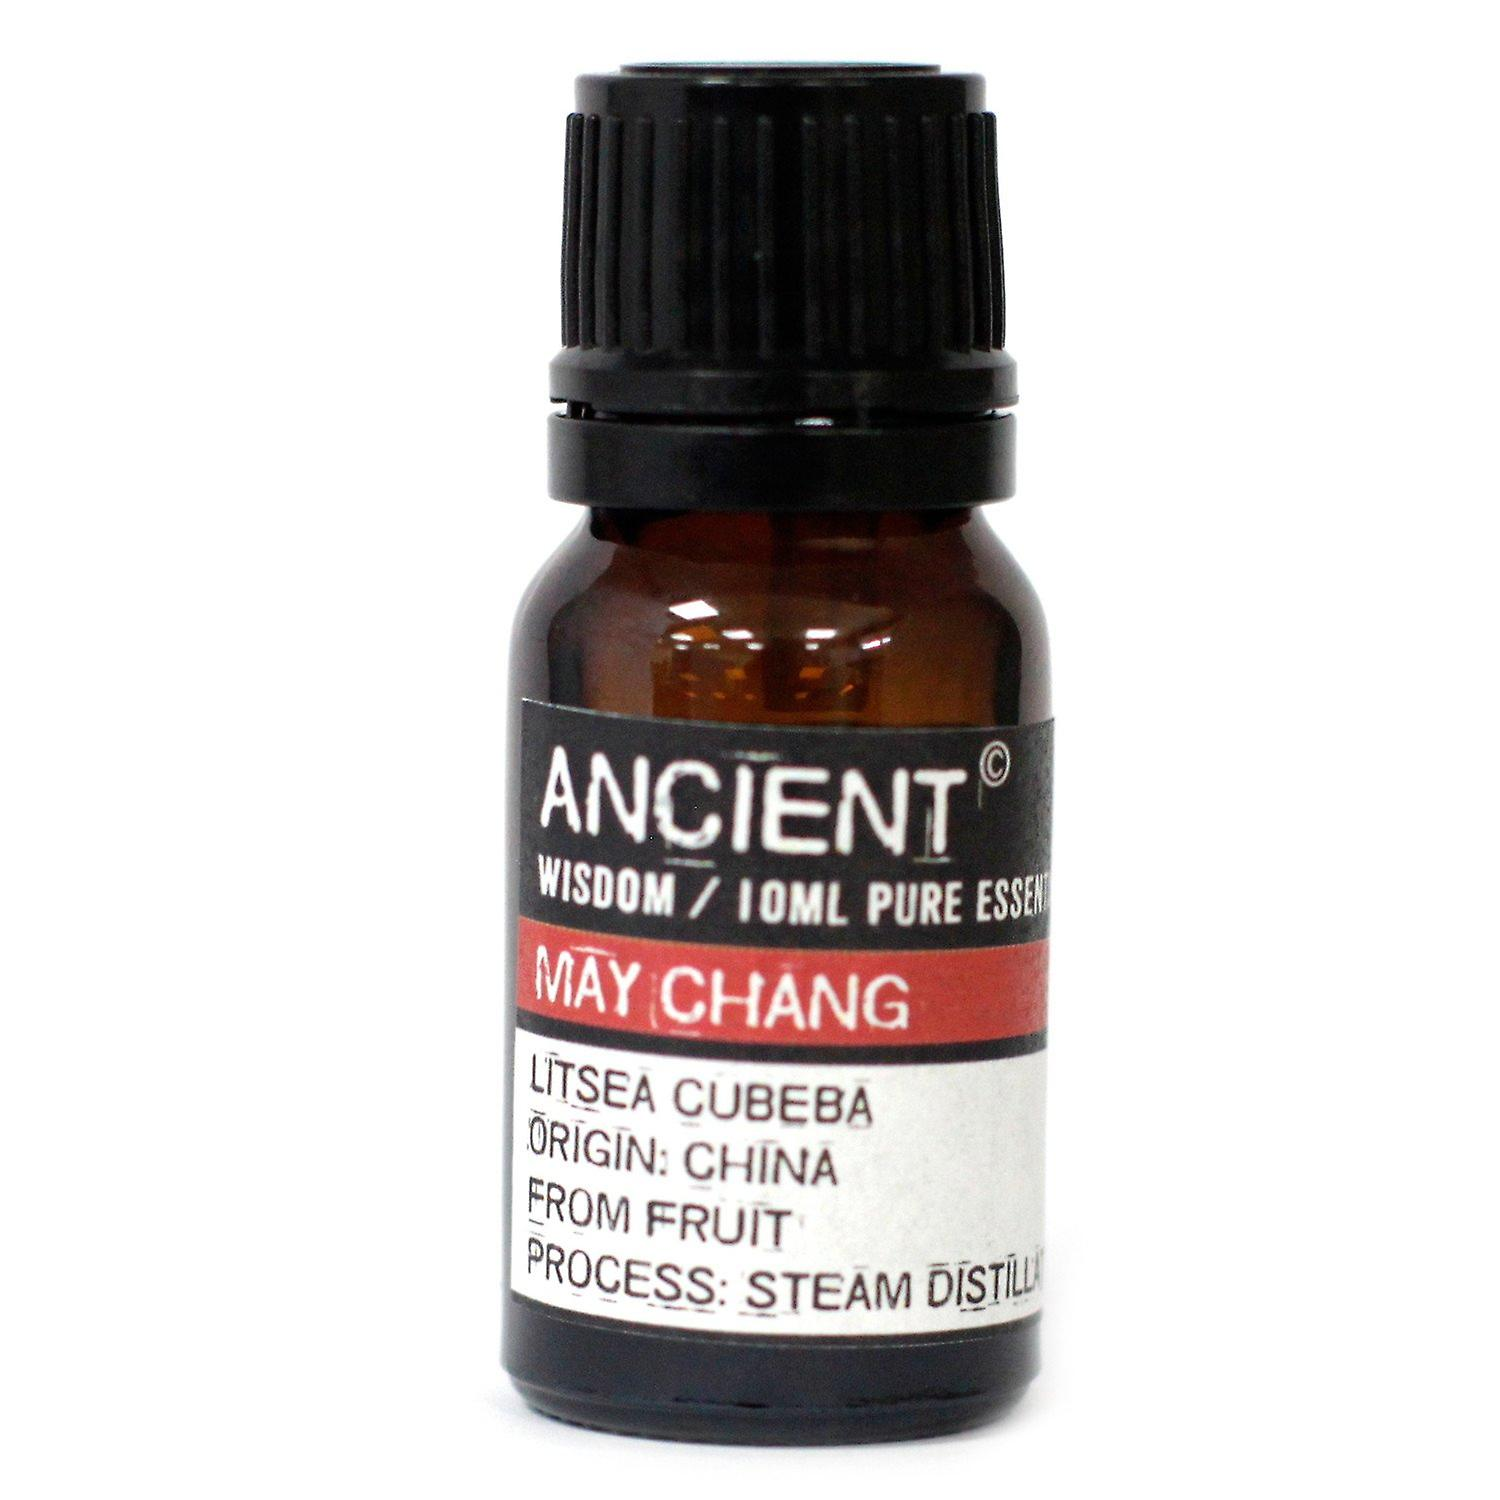 May Chang Essential Oil 10 ml or 0.34 fl oz